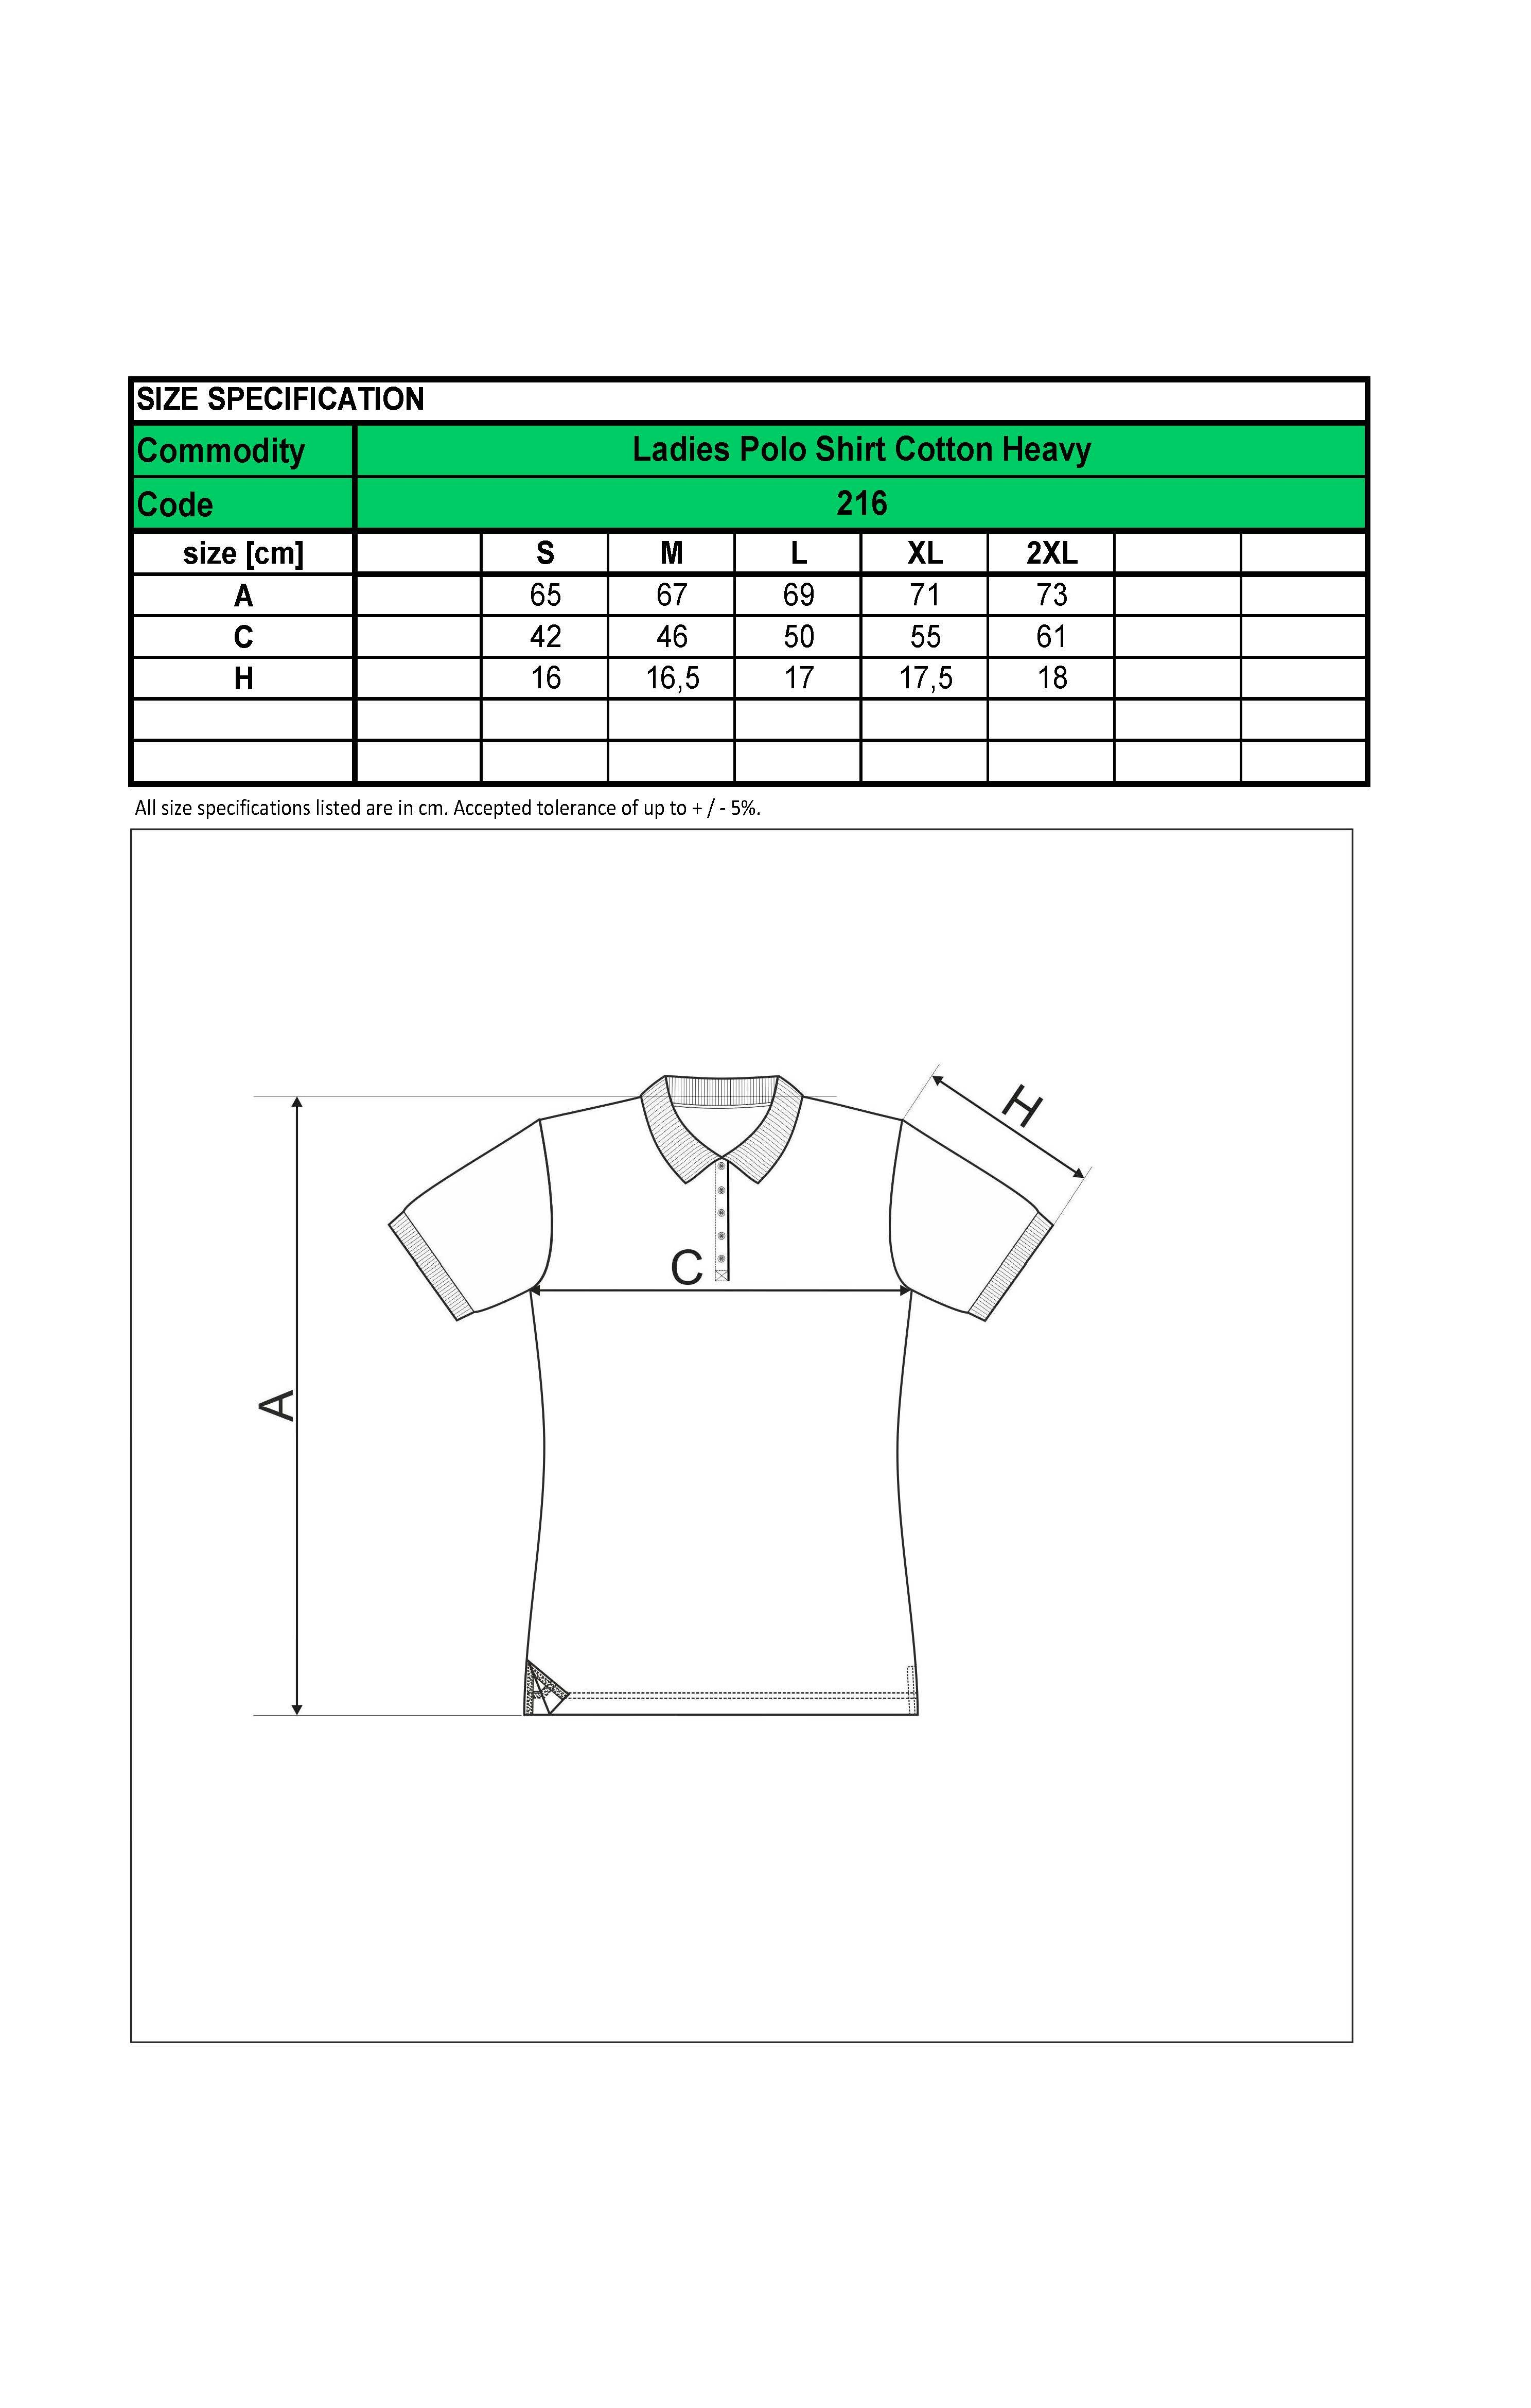 Custom Printed Promotional White Polo Shirts 216 size guide- www.ontimeprint.co.uk